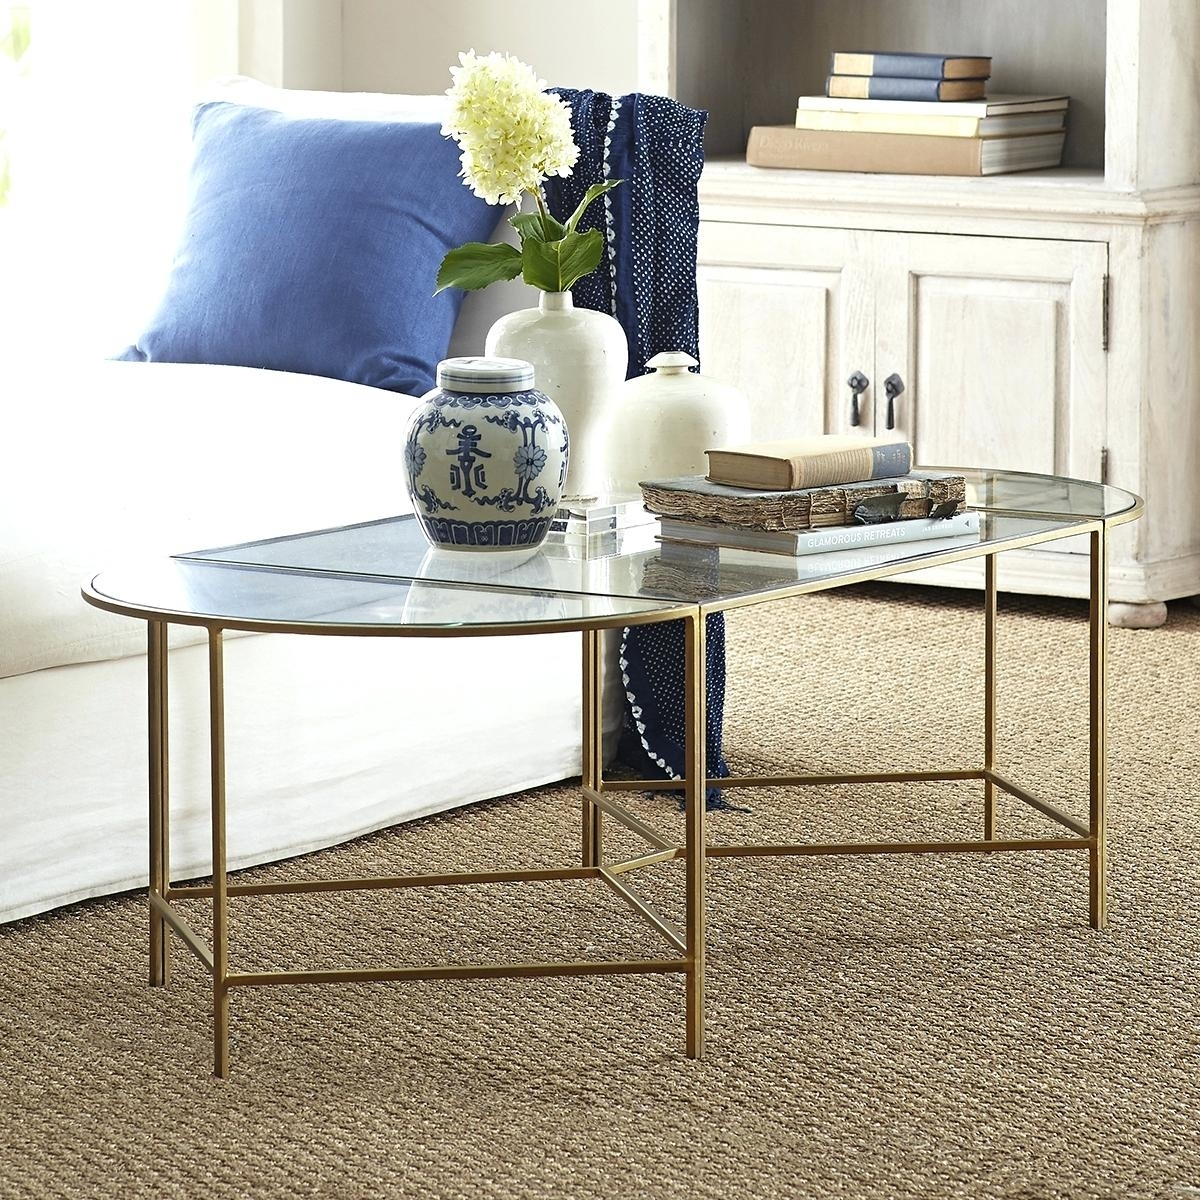 Floor Coffee Table Floor Level Coffee Table – Shareforcures within Expressionist Coffee Tables (Image 13 of 30)